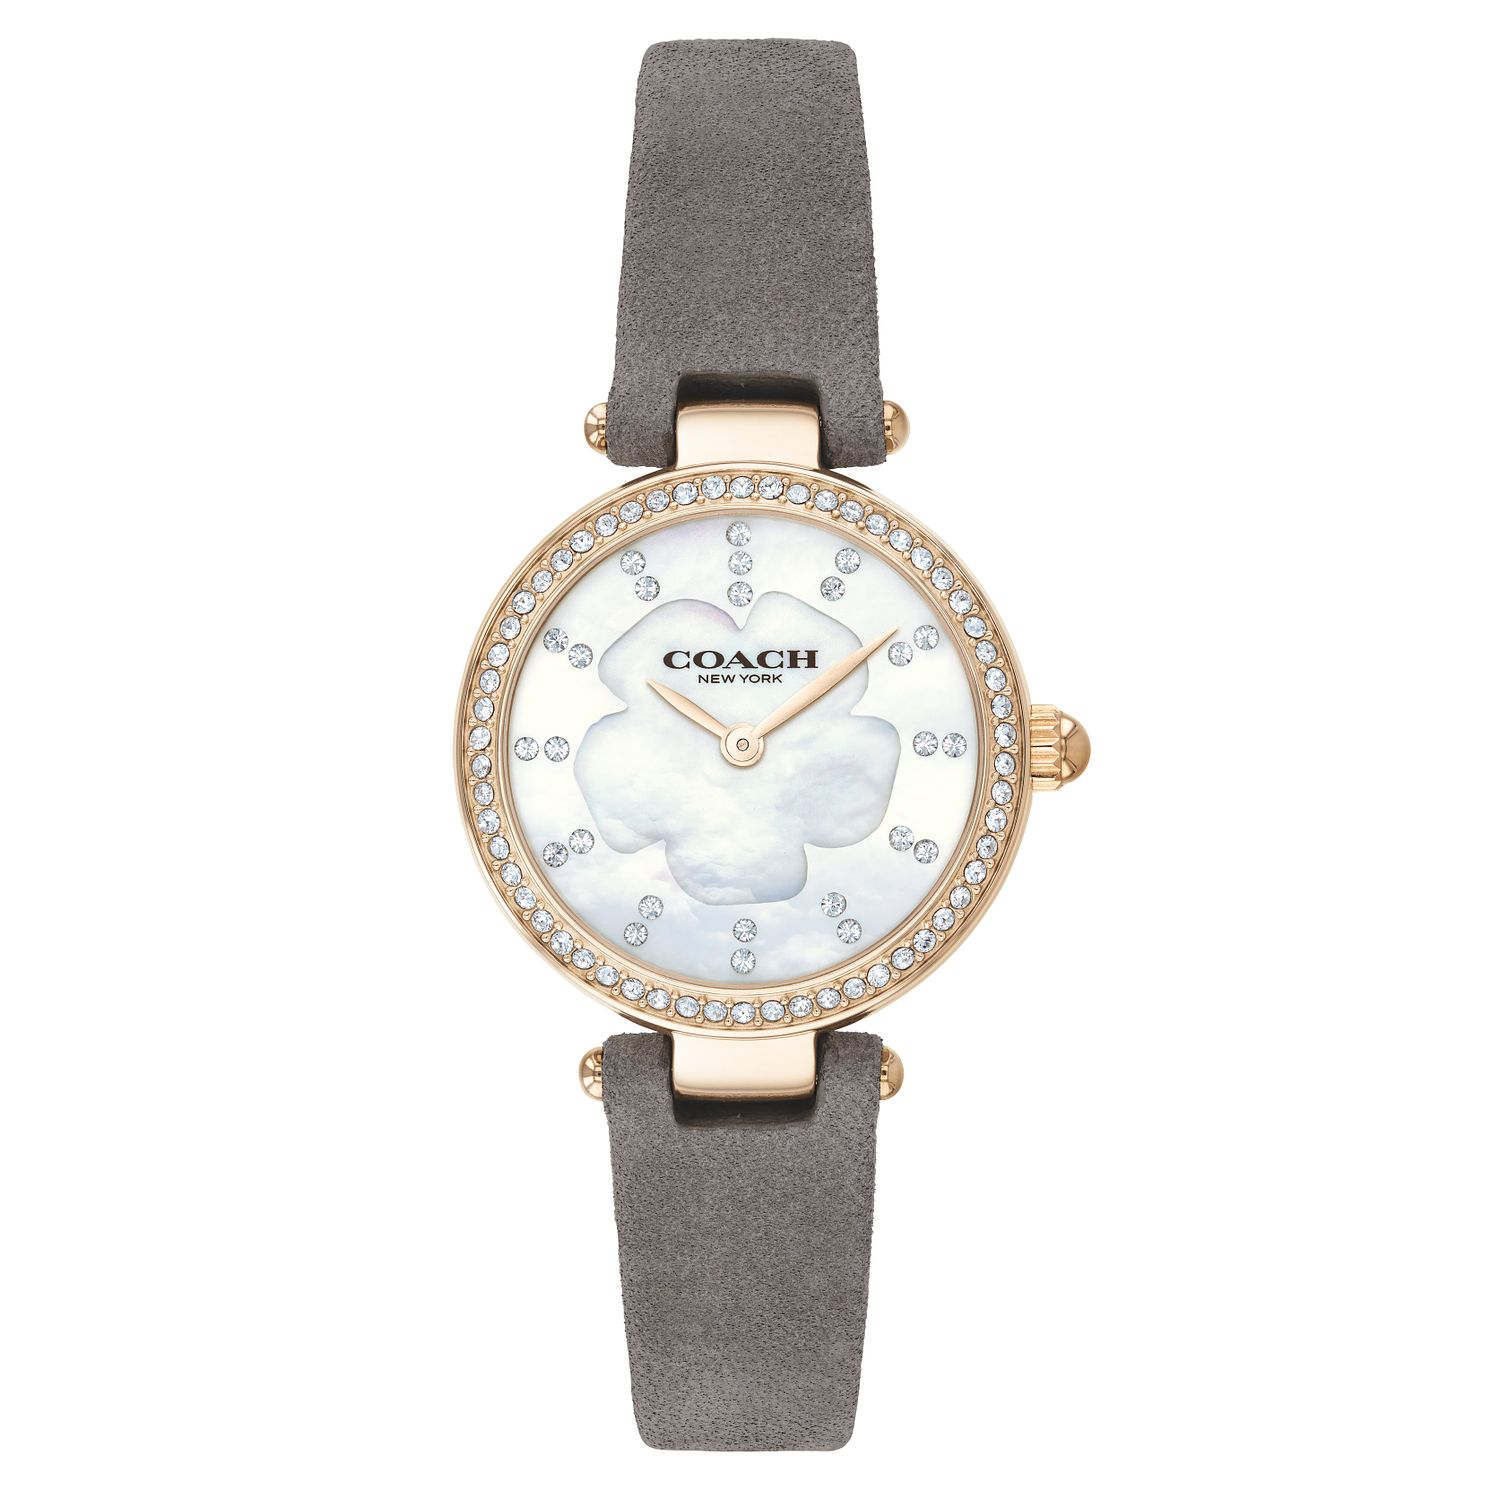 Coach Park Ladies' Yellow Gold Plated Strap Watch - Product number 9410309